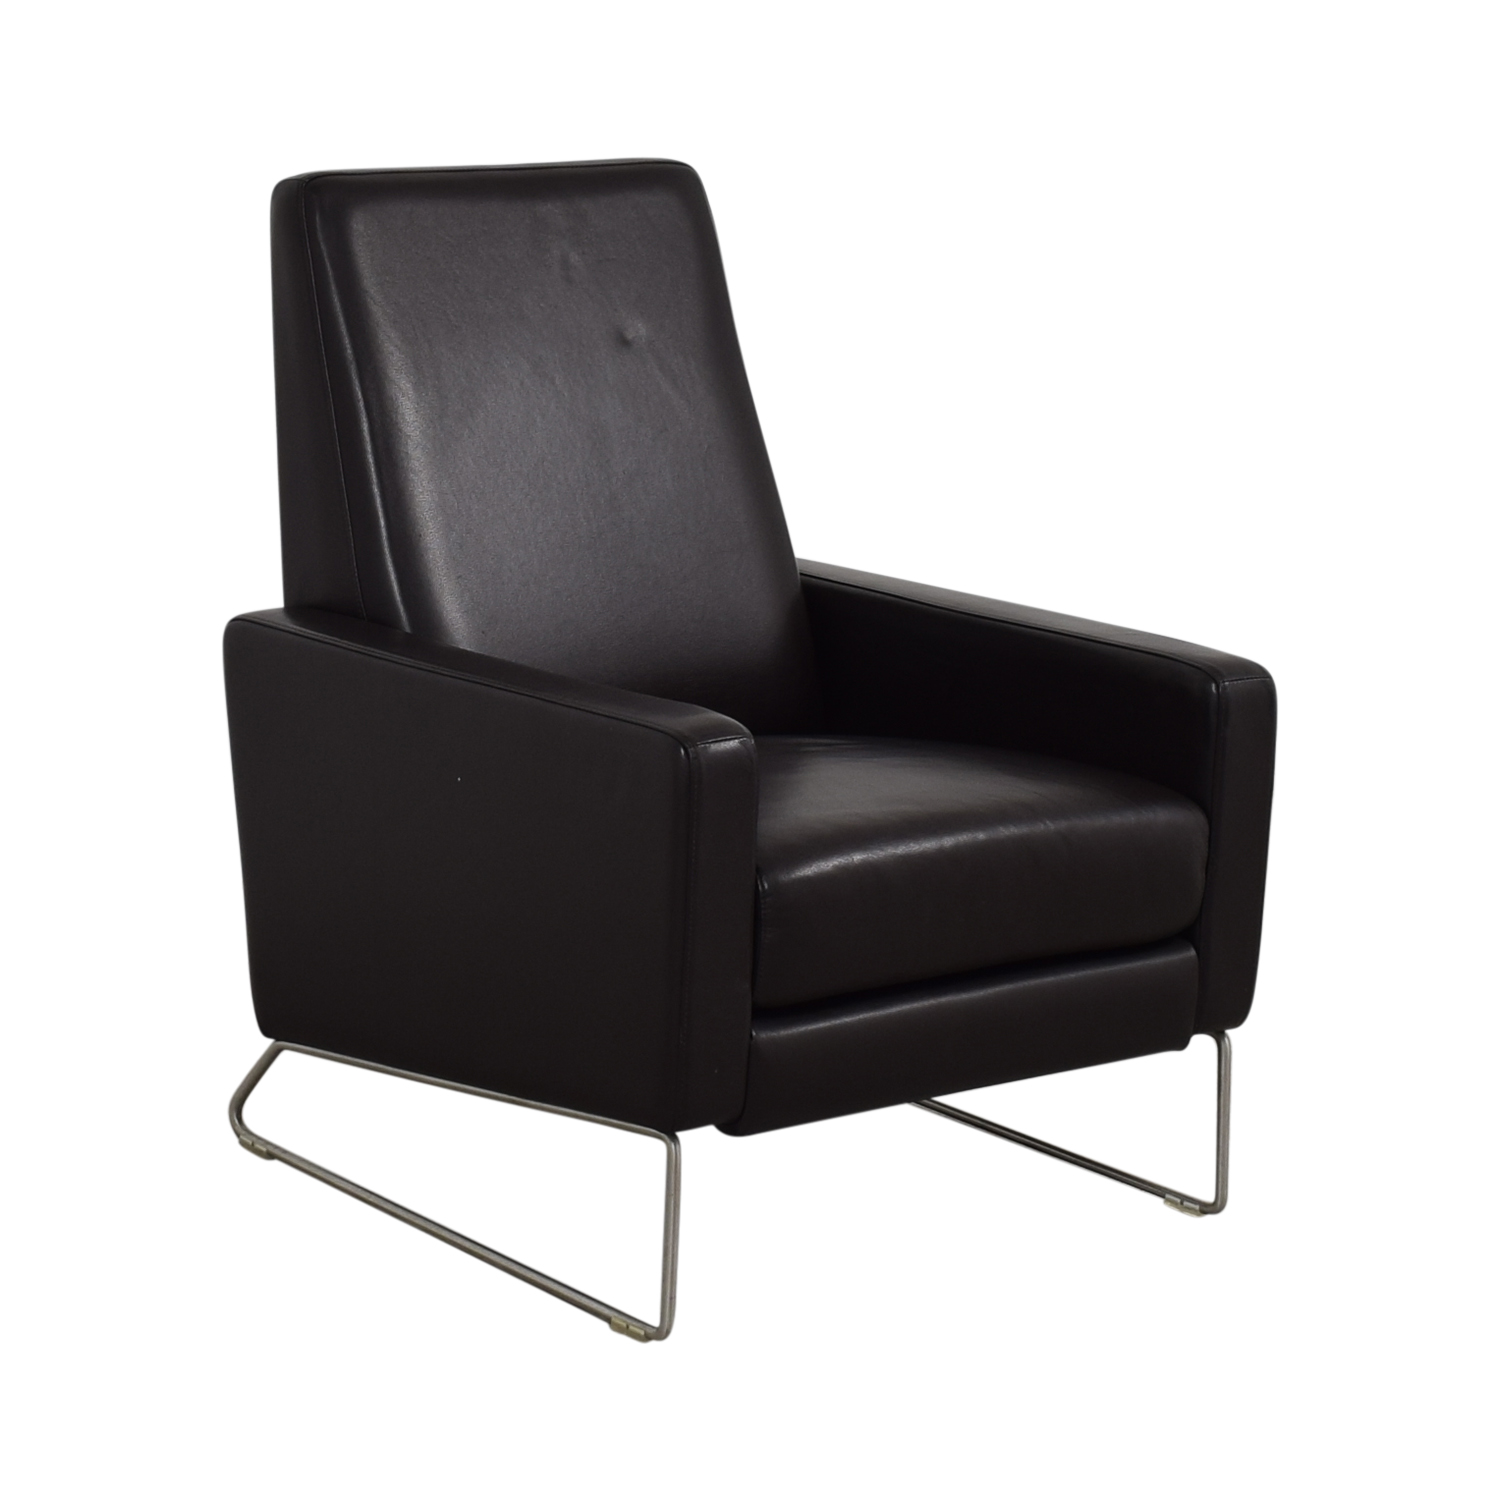 Delicieux 65% OFF   Design Within Reach Design Within Reach Flight Brown Leather  Recliner Chair / Chairs